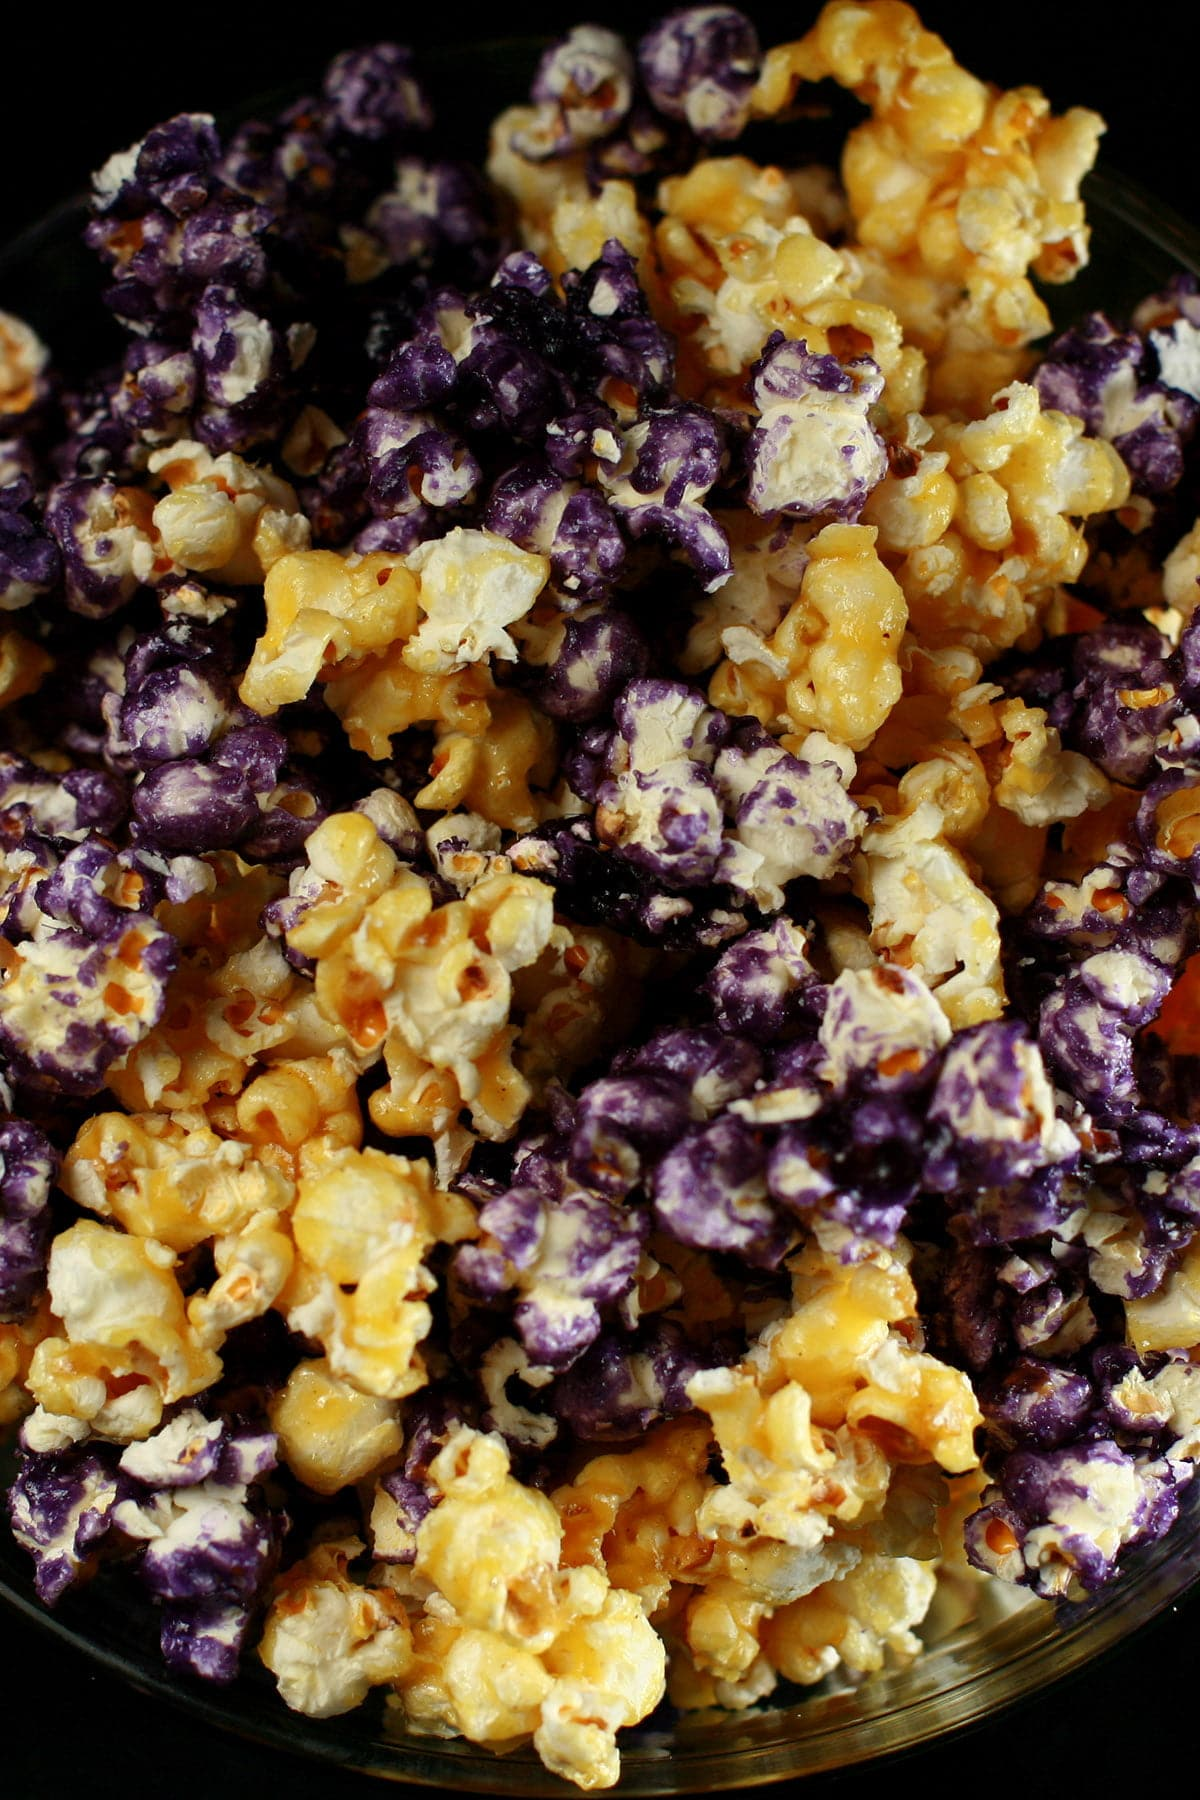 A close up view of yellow and purple glazed popcorn.